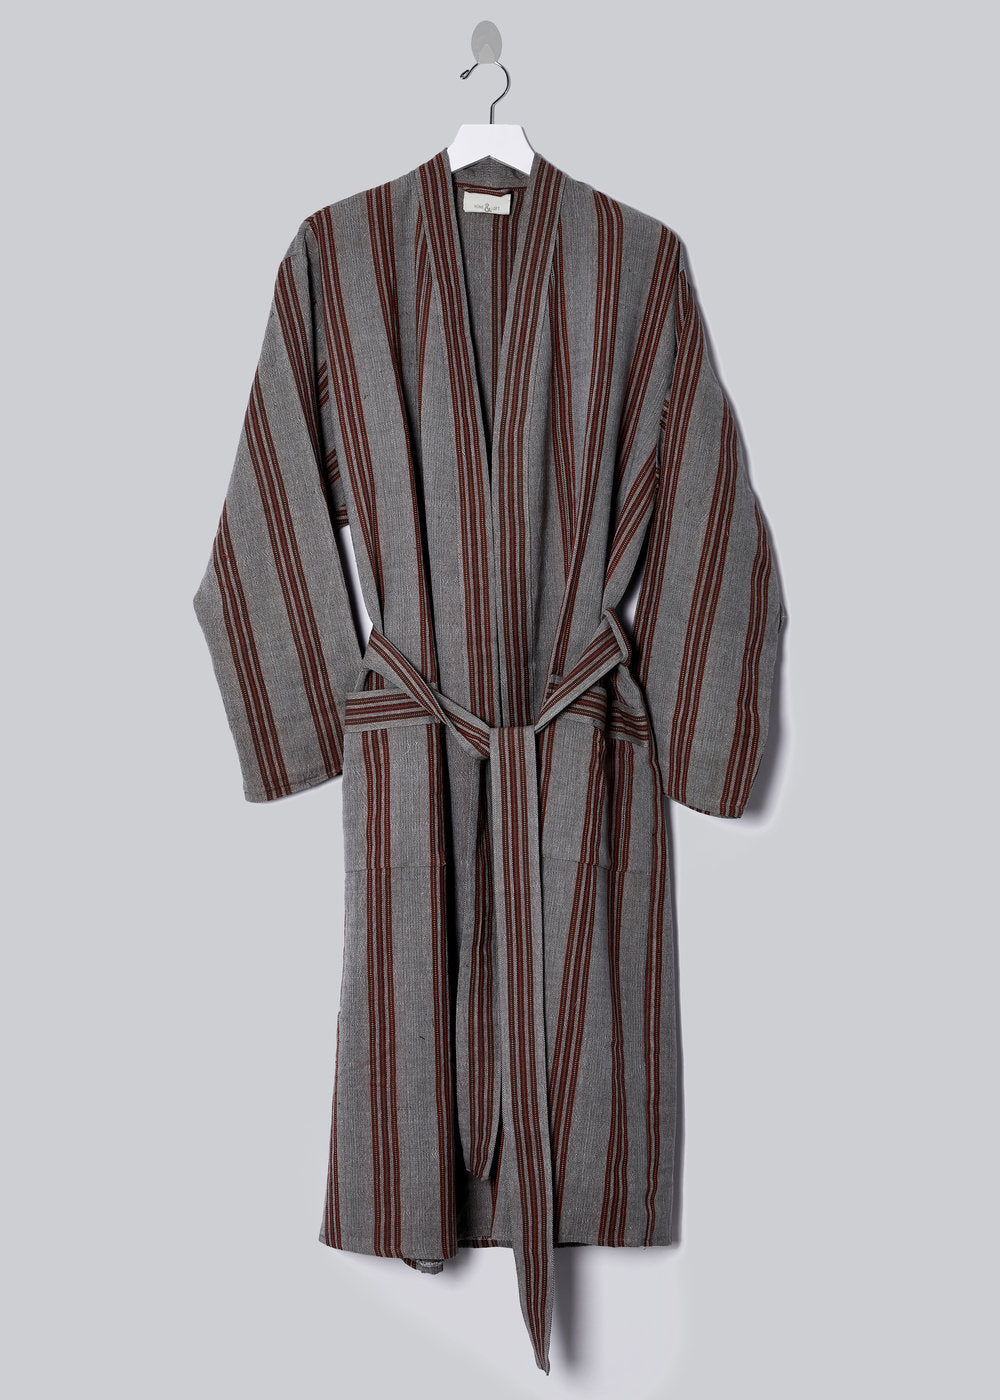 New York Robe - Grey + Rust